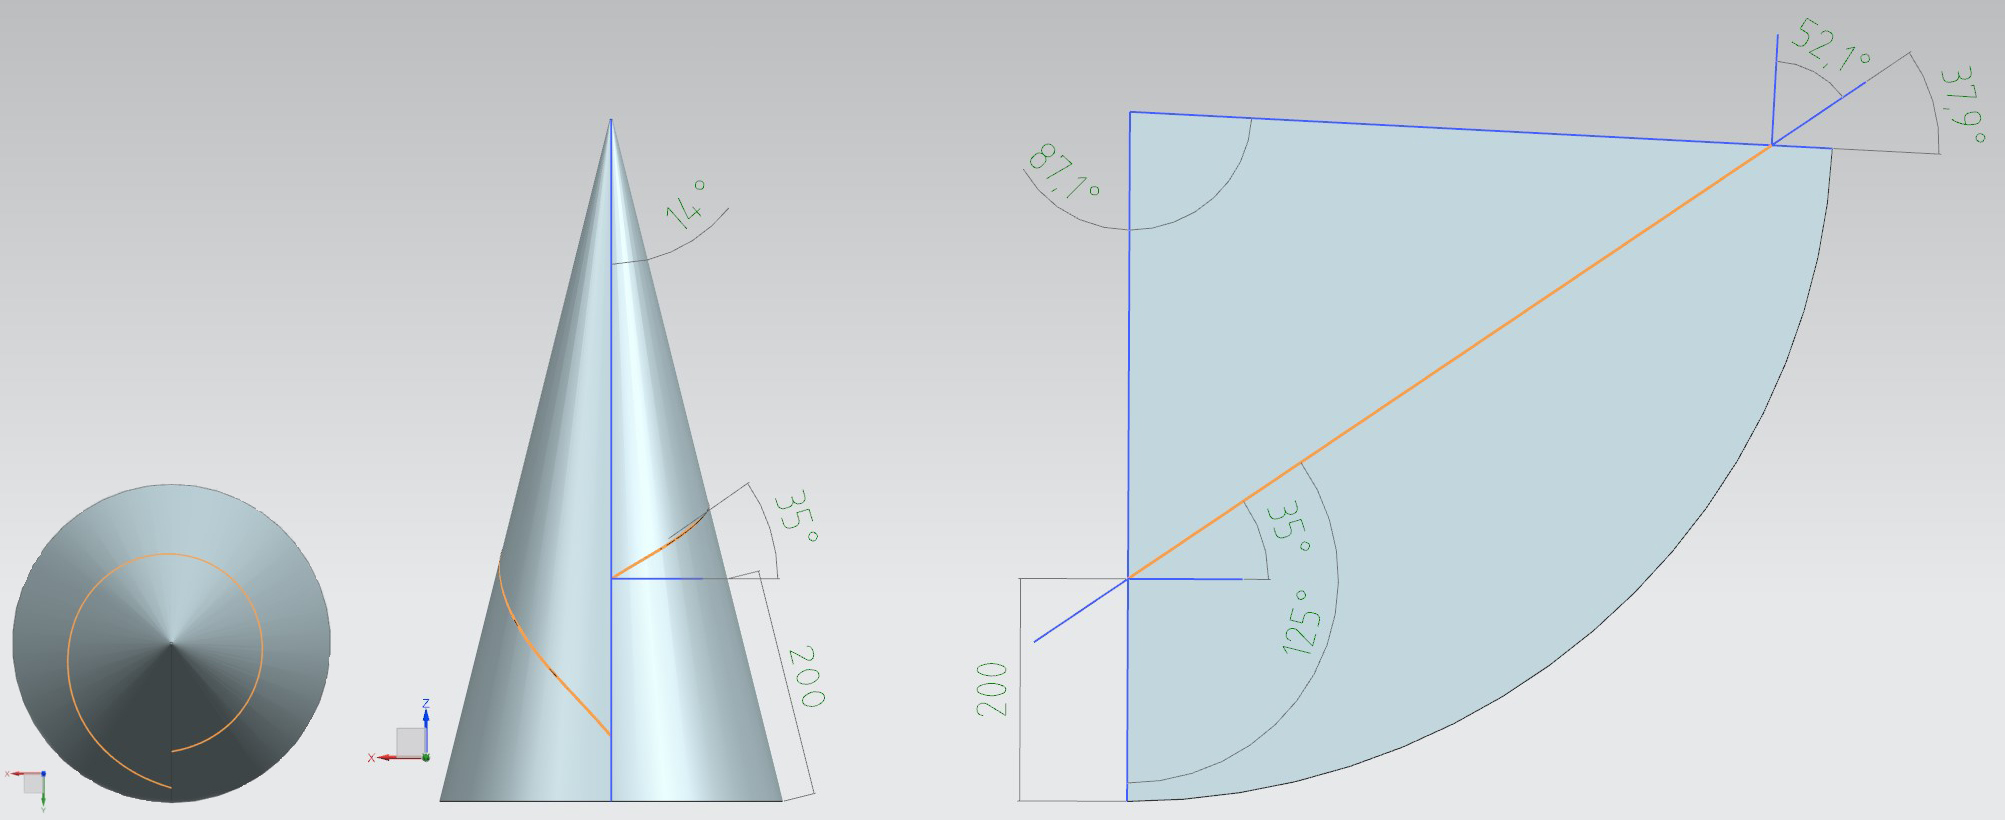 A descriptive Explanation of the Belt Tracking Properties of Pulleys by using the geometric Properties of the flat Pattern of their Surface – Fig. 8: 3D image showing the top and side views of a straight cone with the flat pattern of its mantle surface and a laterally unbent line across the surface of the cone.